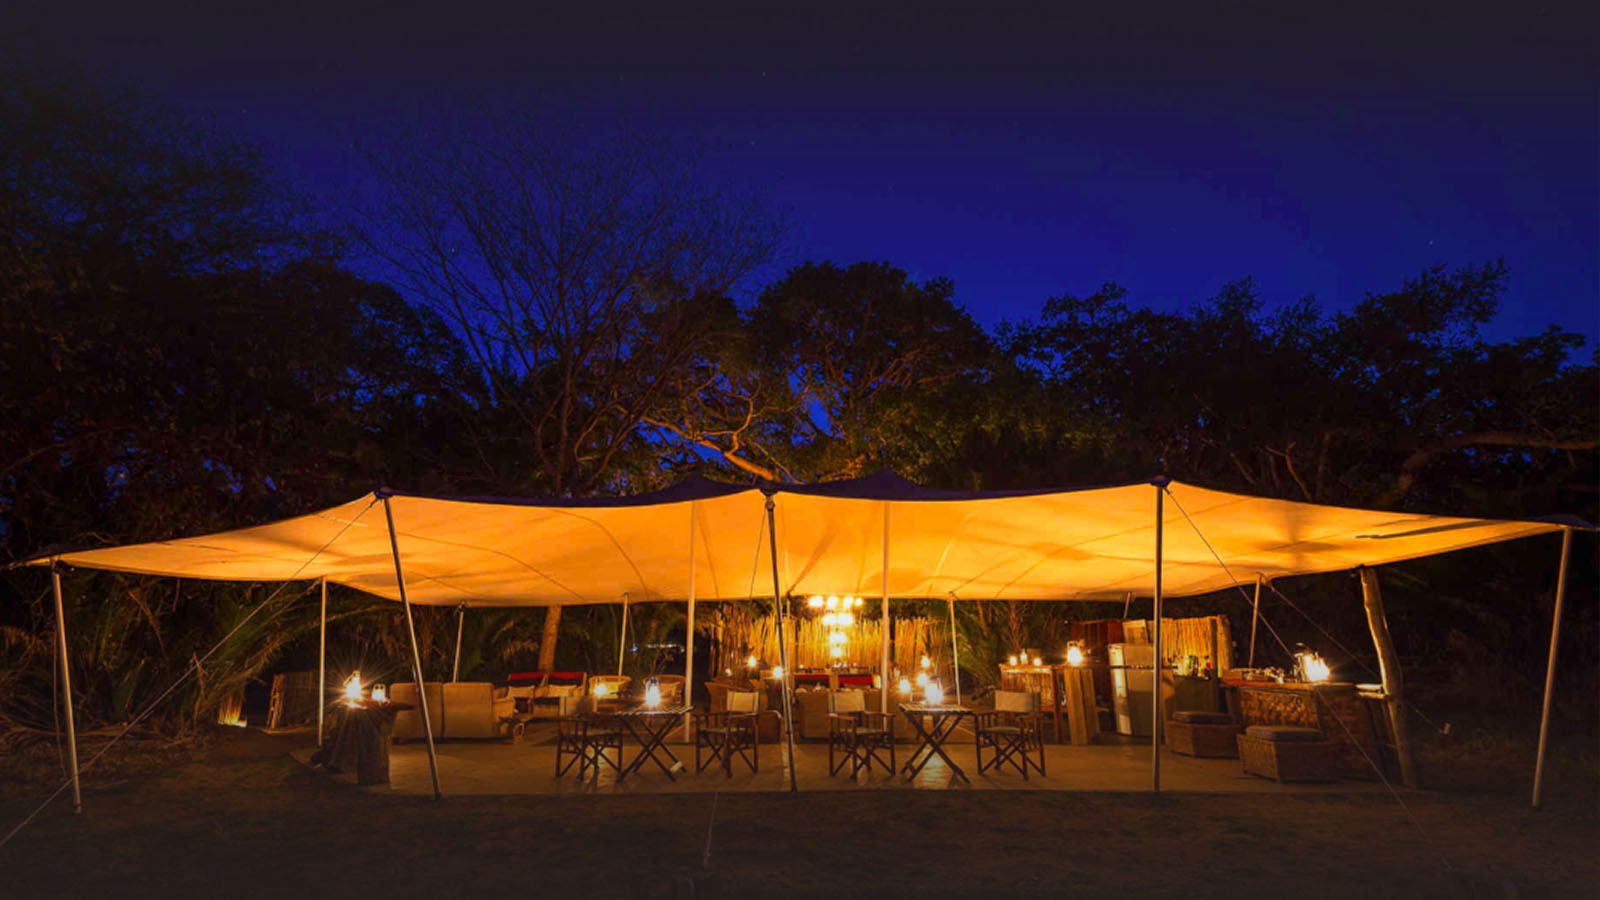 busanga bush camp zambia-in-style-safari-packages-lodges-kafue-national-park-chalets-intimate-location-evening